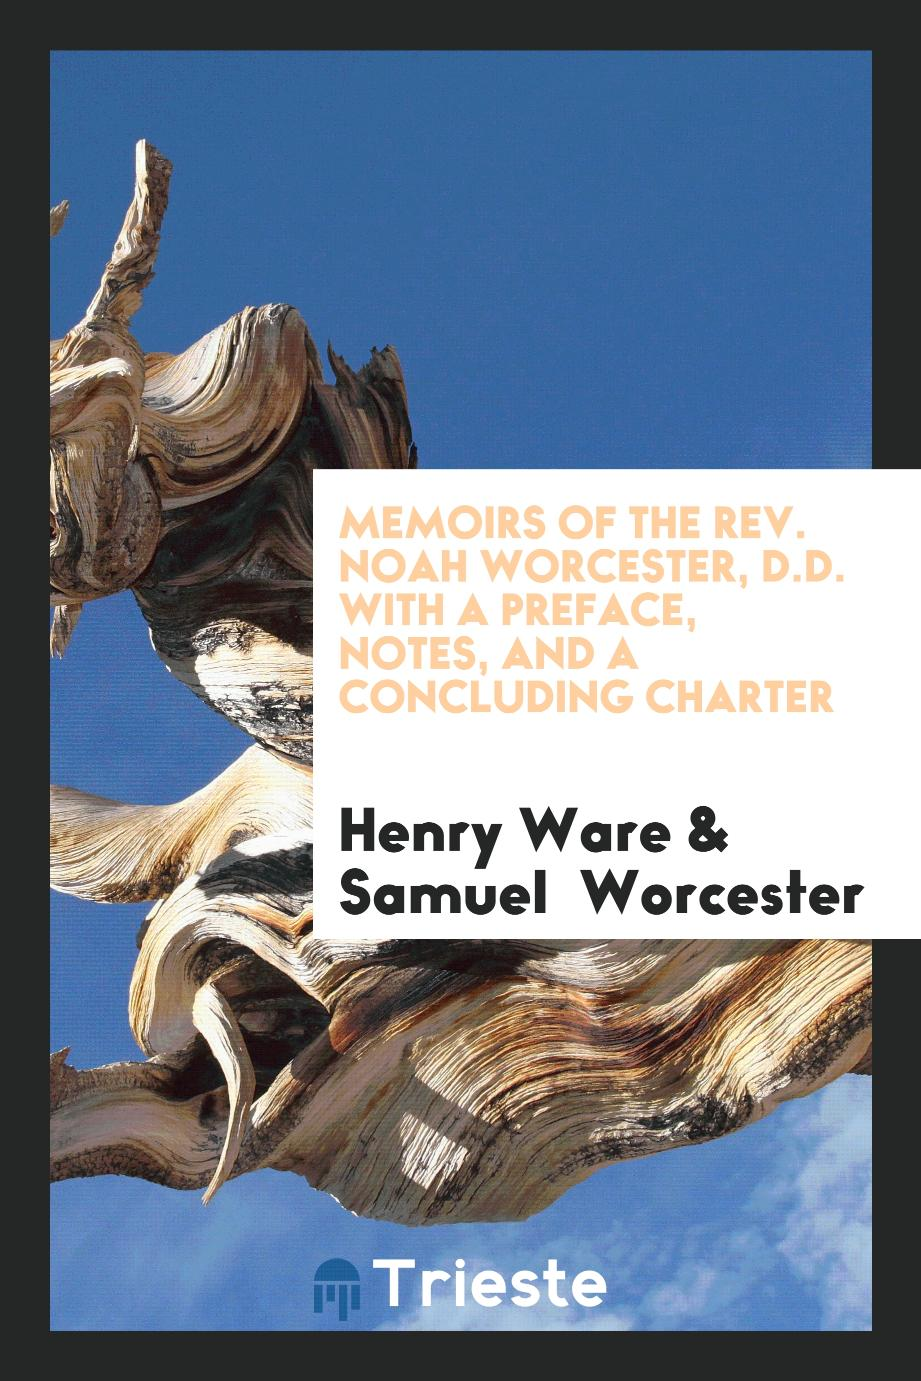 Memoirs of the Rev. Noah Worcester, D.D. With a Preface, Notes, and a Concluding Charter